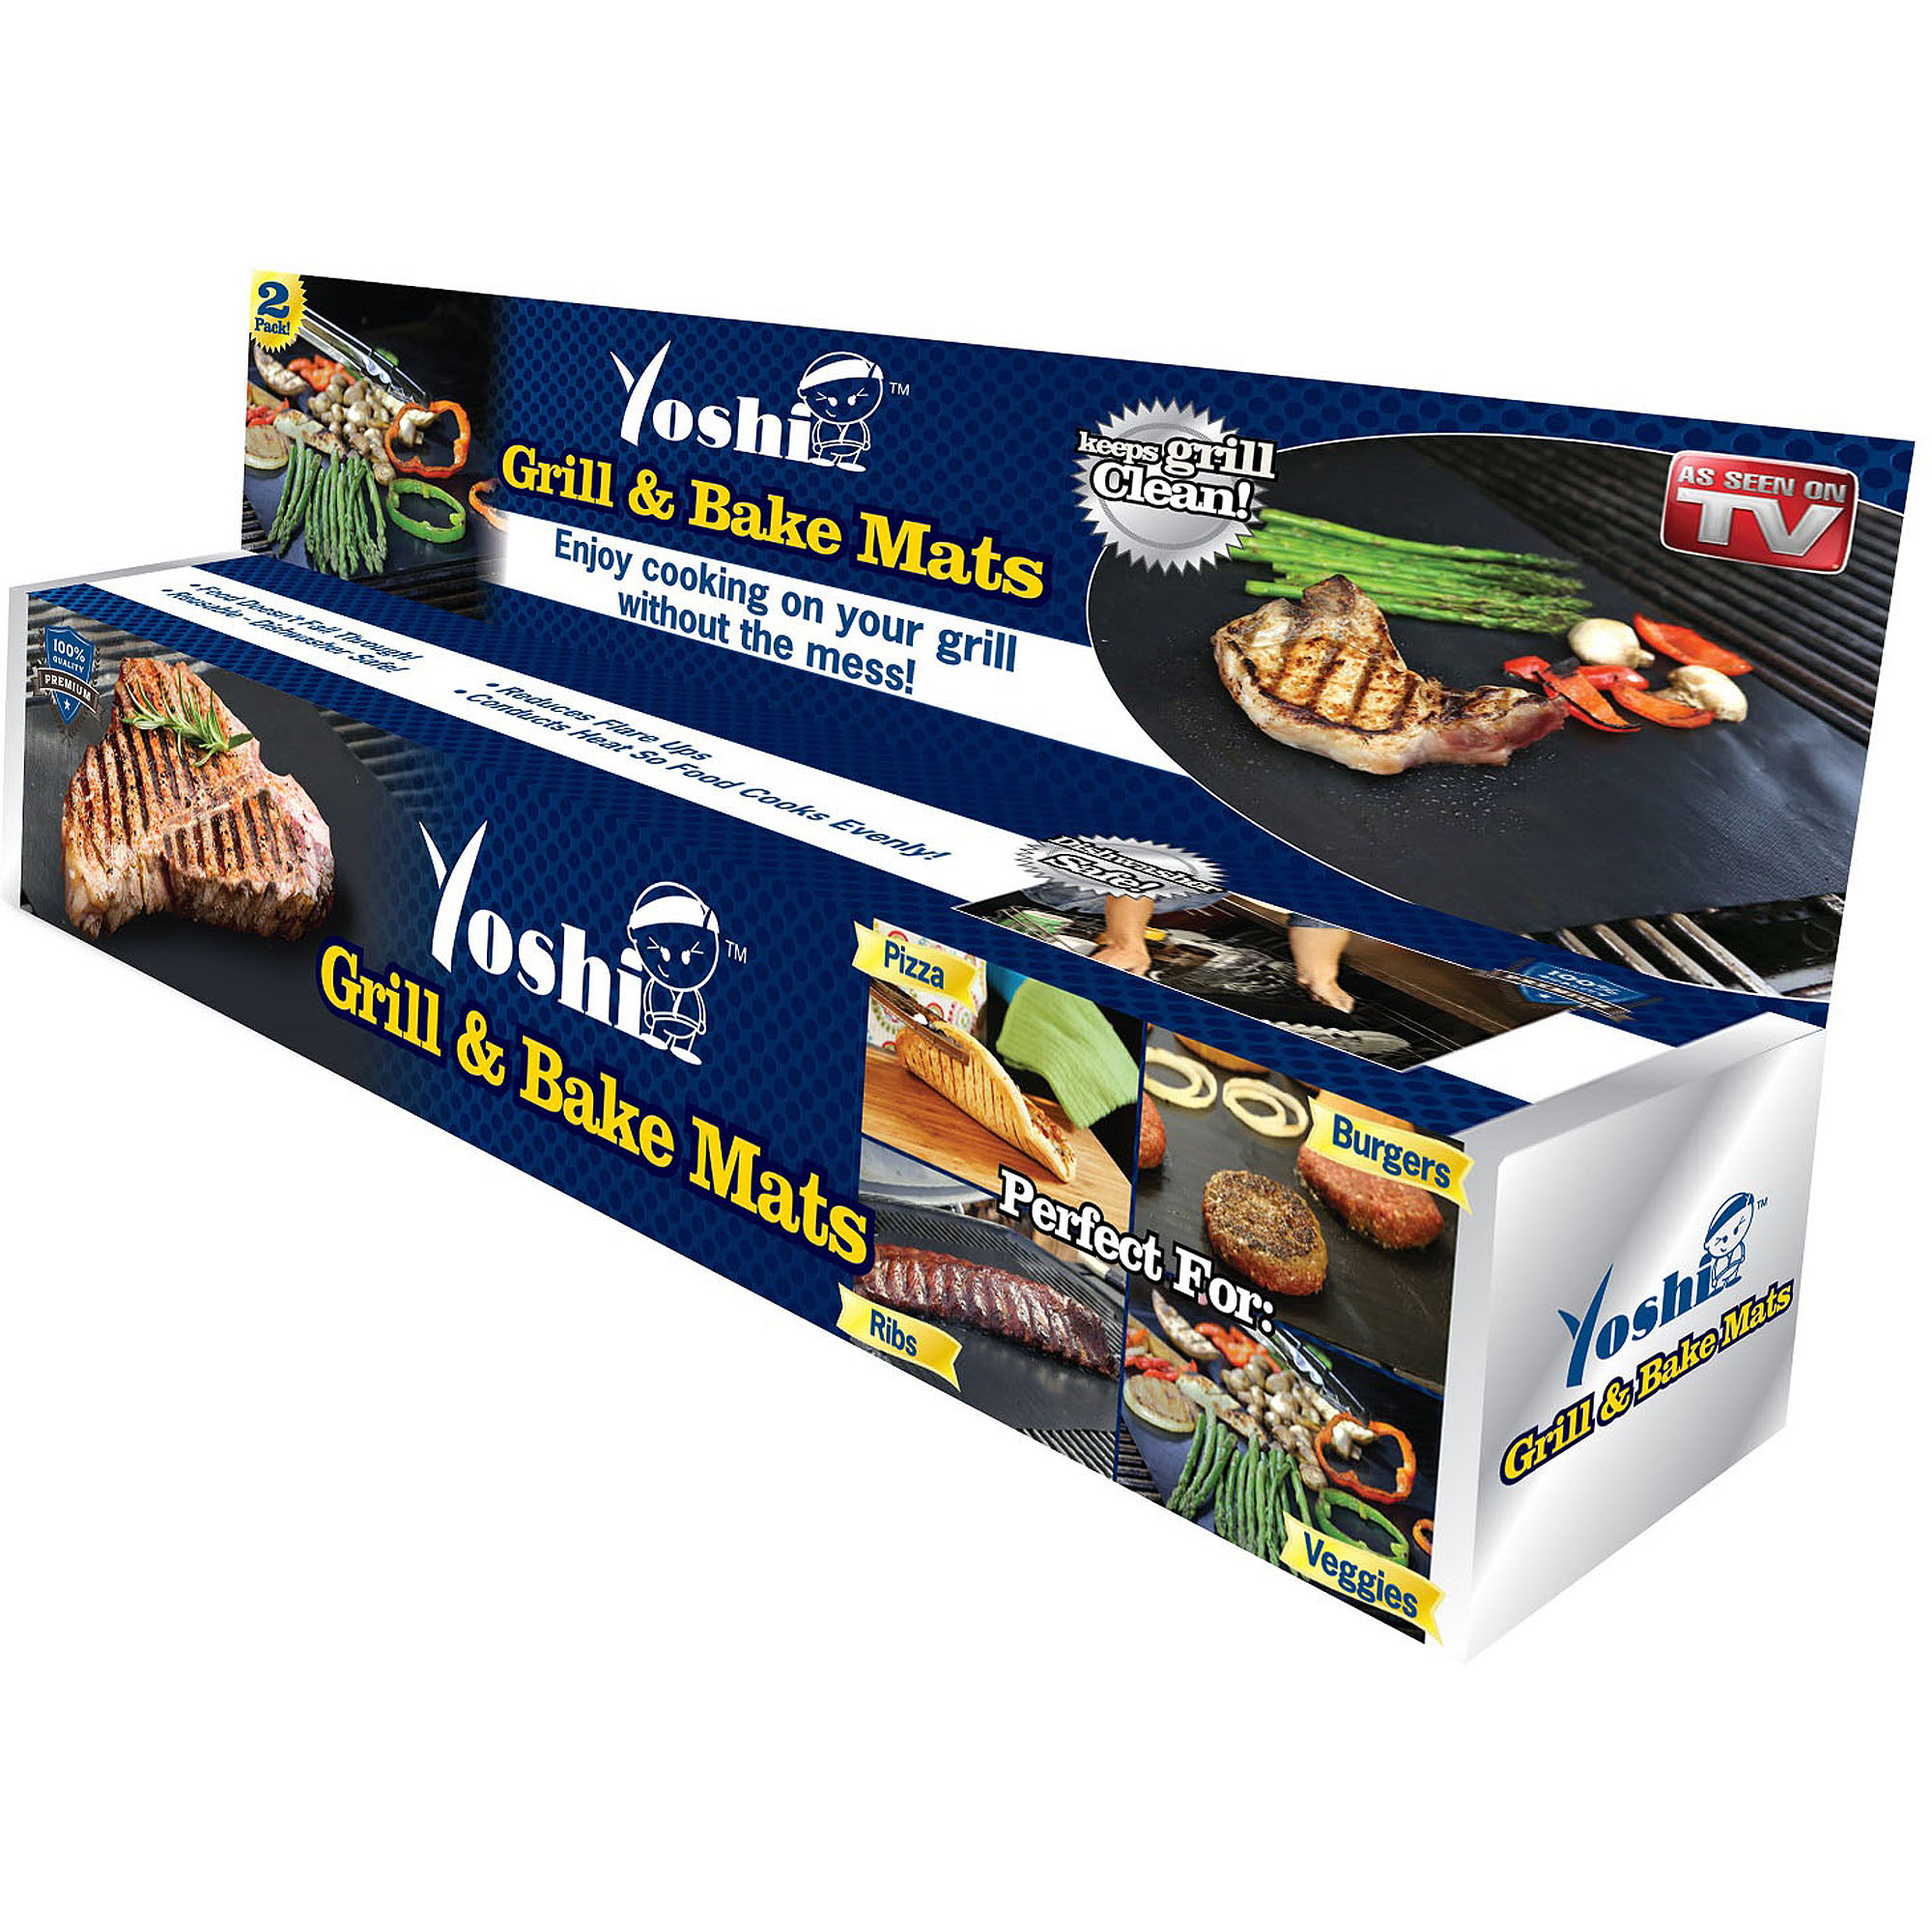 As Seen on TV Yoshi Grill and Bake Mat